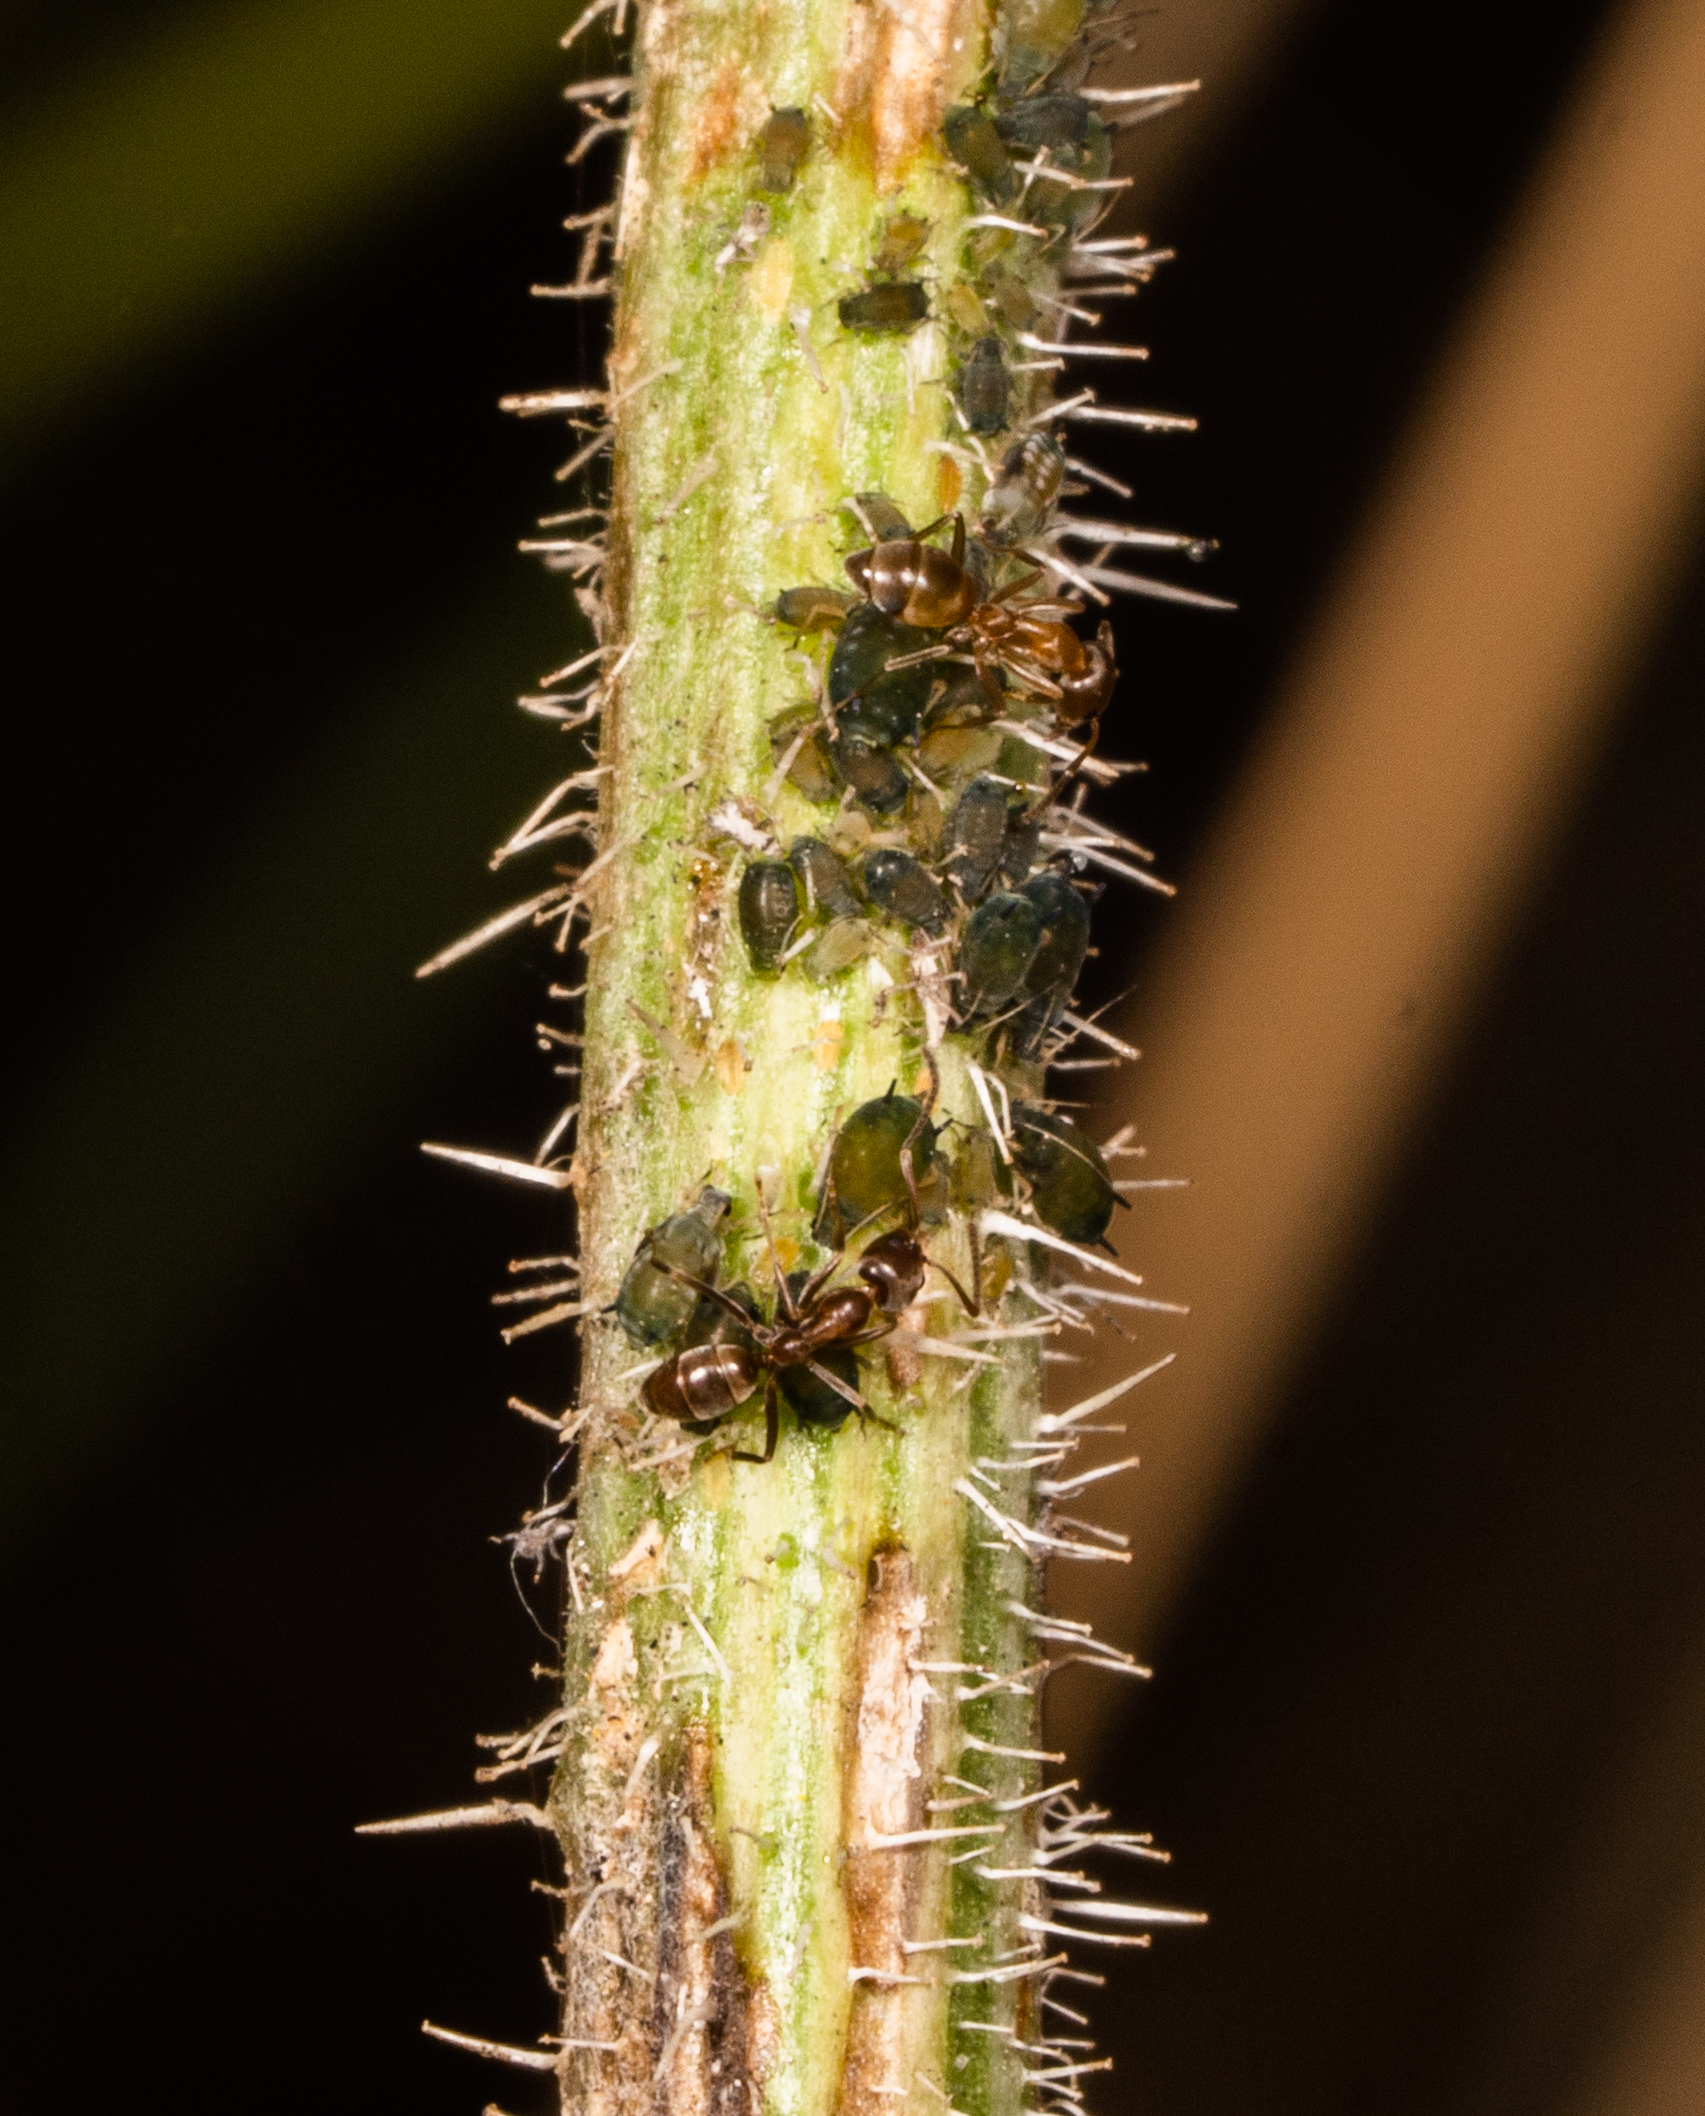 Argentine Ants tending Aphids